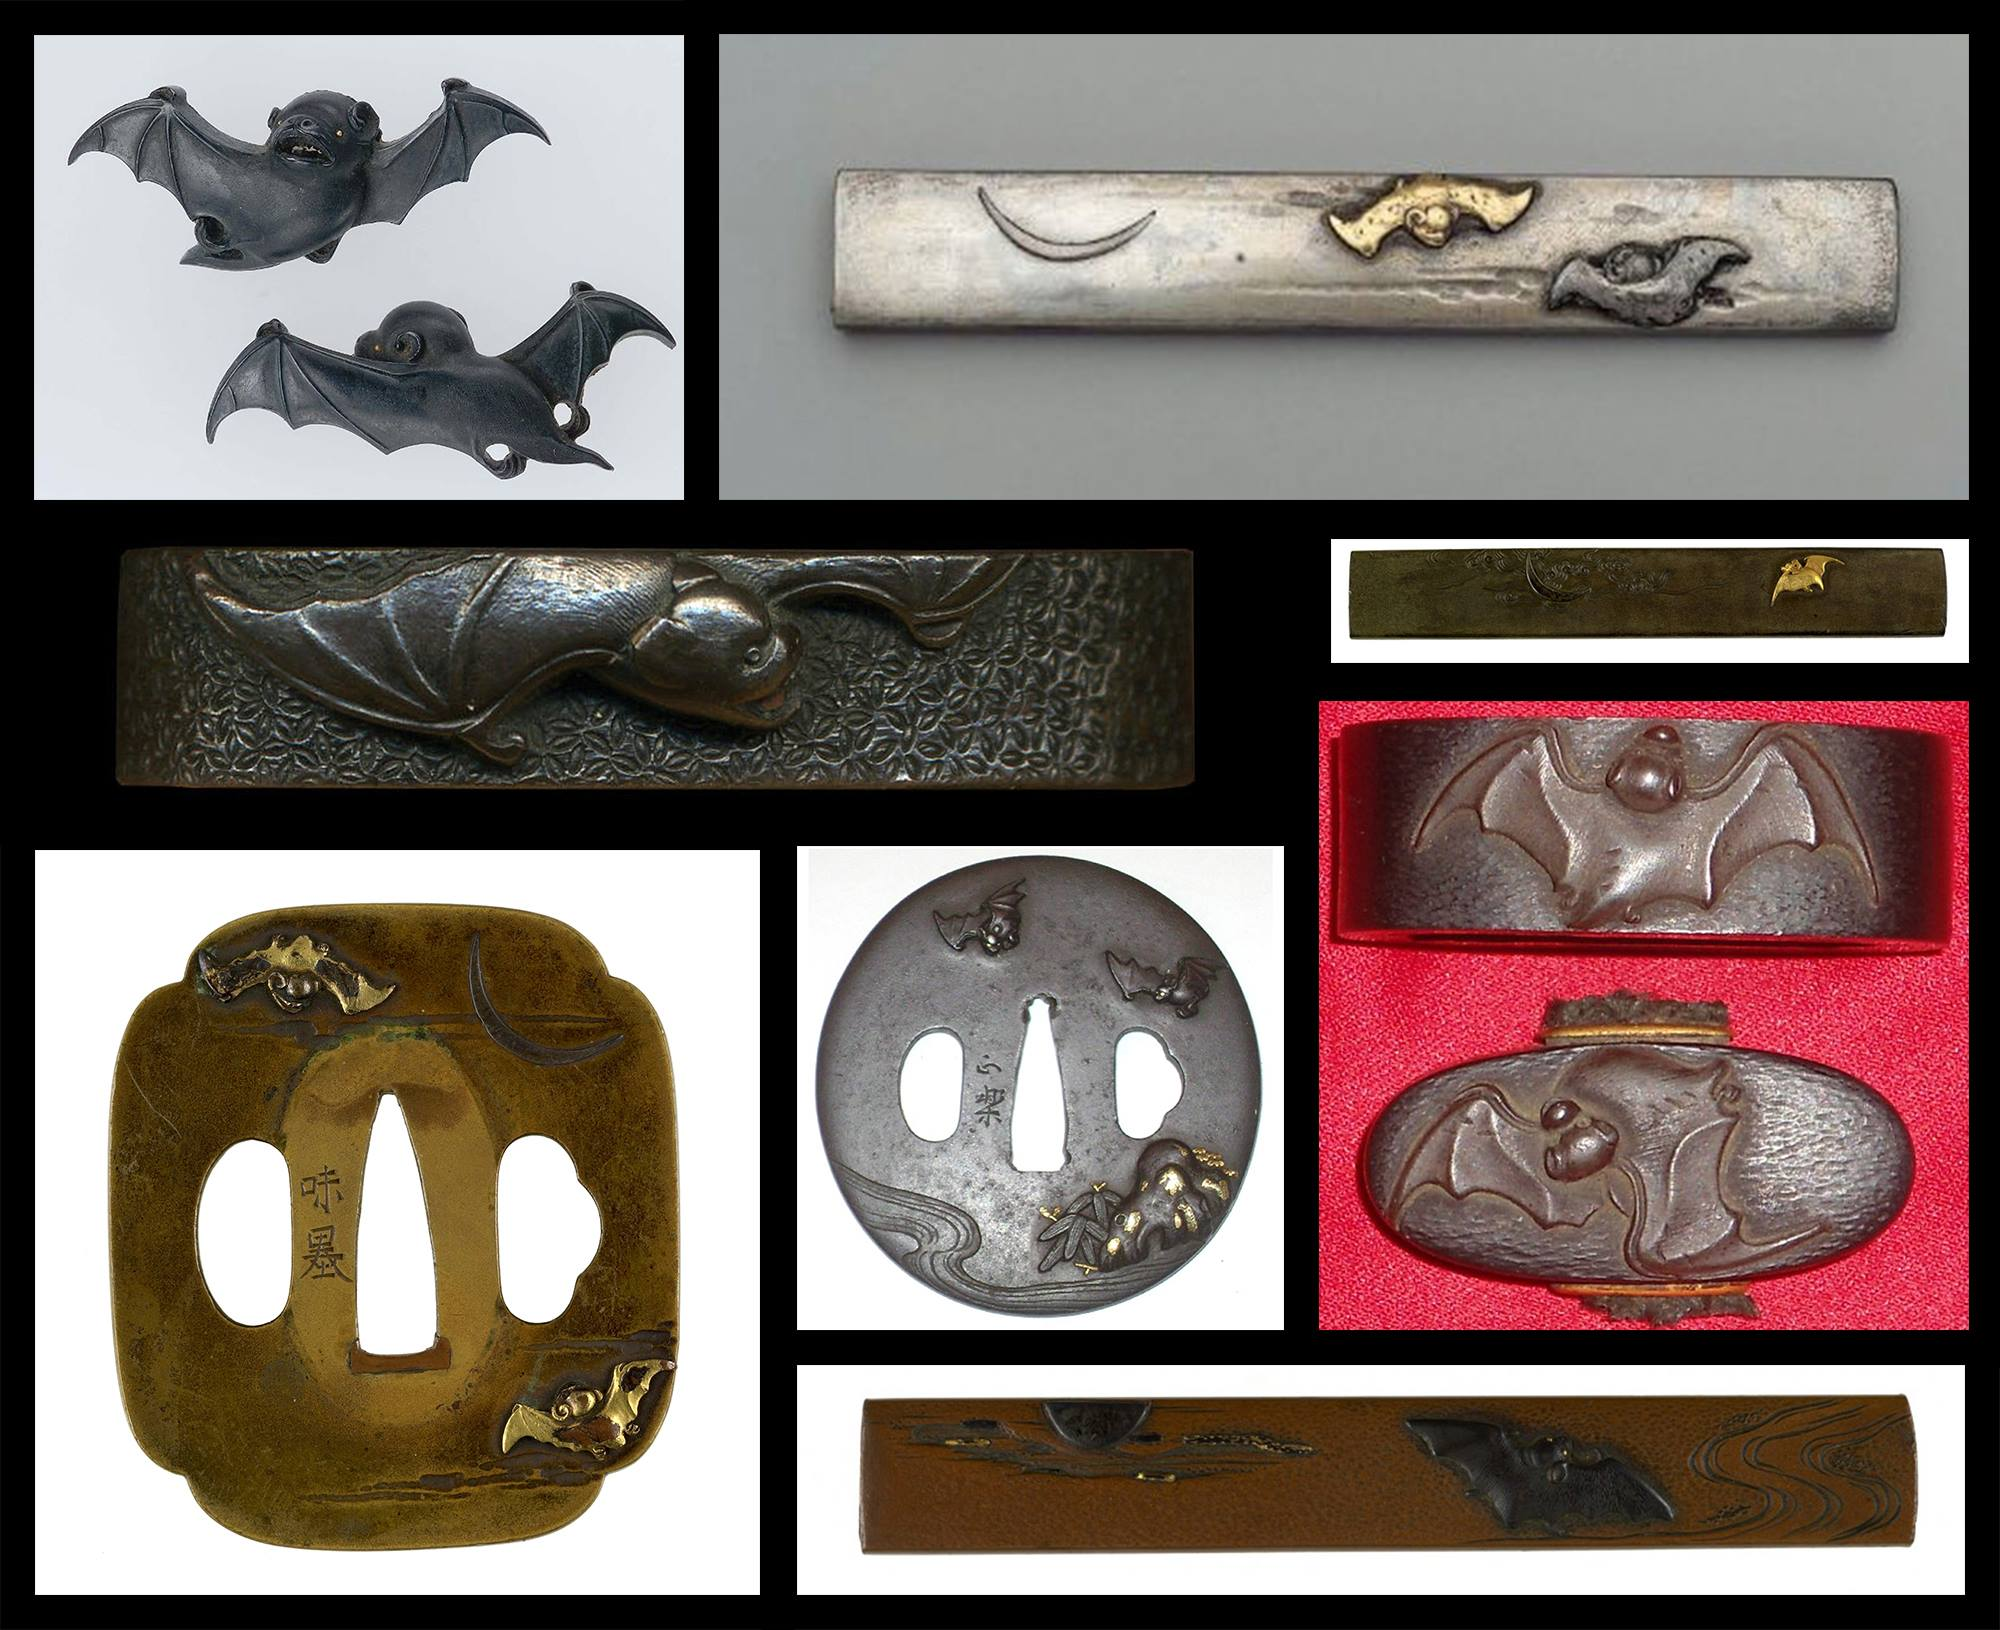 A selection of koshirae featuring bats as the dominant theme